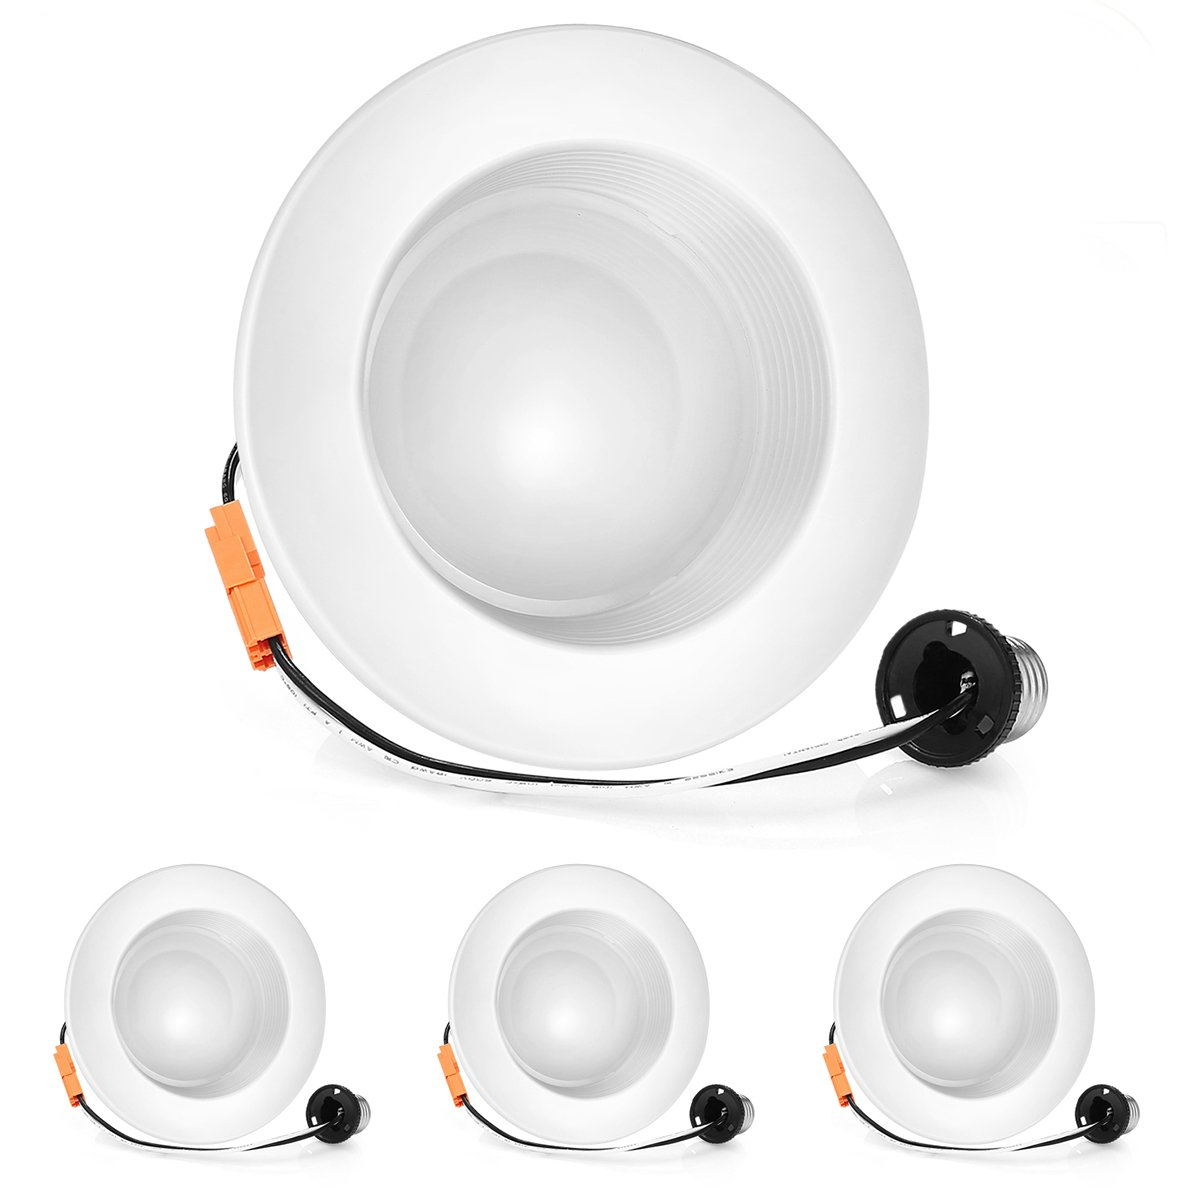 VANSENG 4inch Dimmable LED Downlight, 11W (100W Replacement) 5000K (Daylight White), Energy Star, UL-Listed, LED Ceiling Light - 850Lumens Recessed LED Downlight (4 Pack)